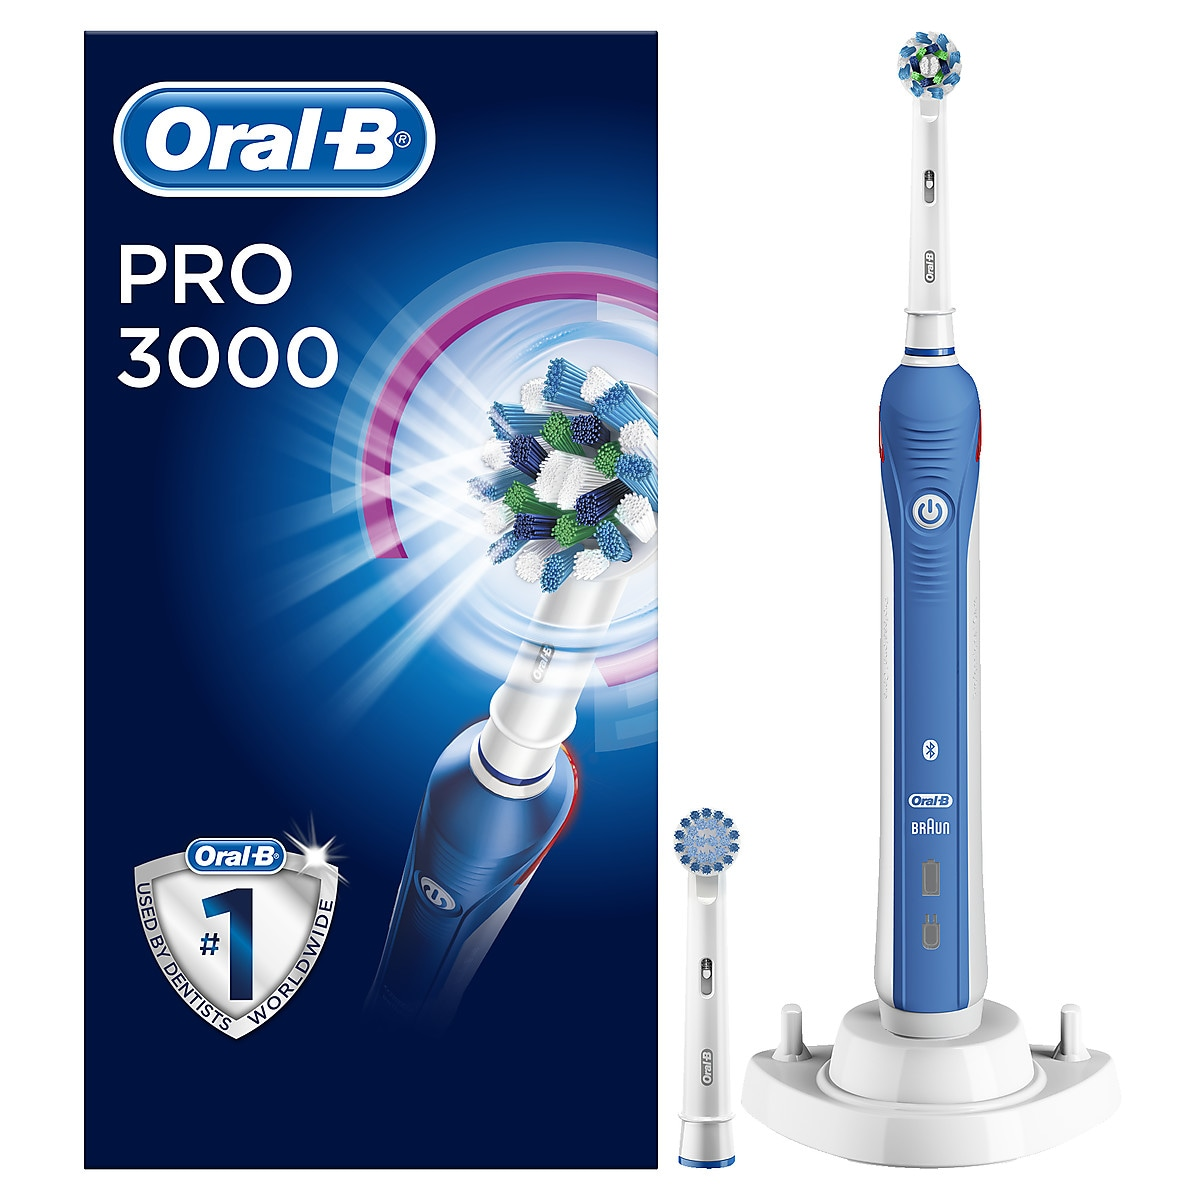 Sähköhammasharja Oral-B PRO 3000 Cross Action